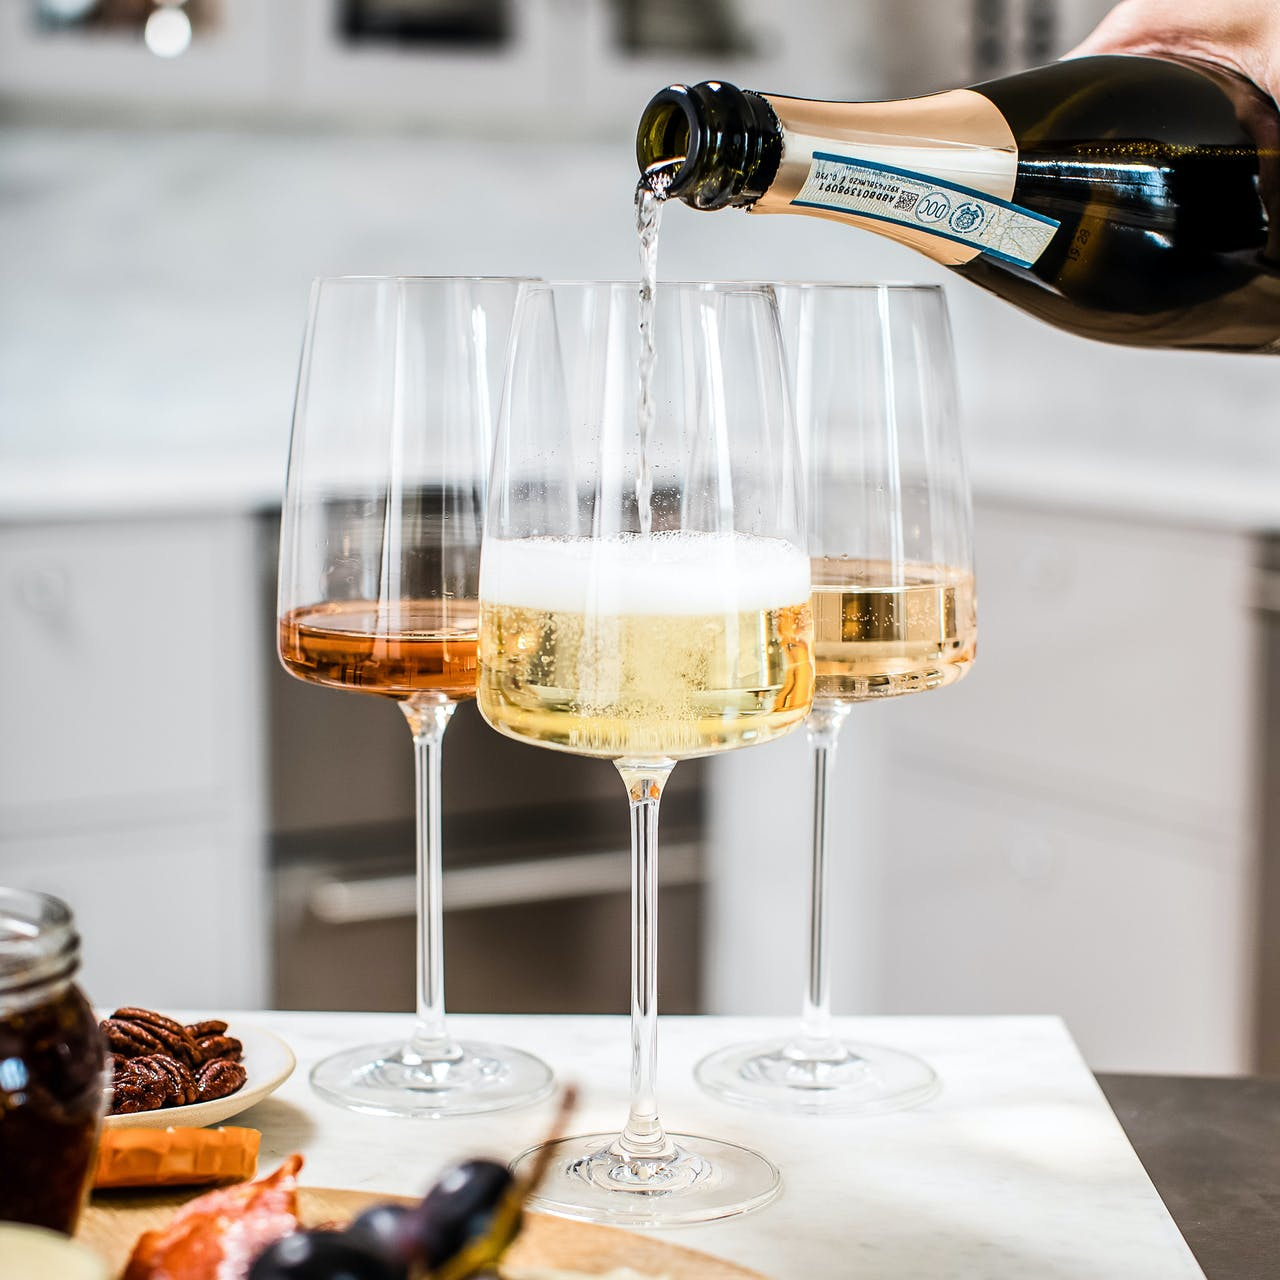 sparkling wine being poured into a wine glass